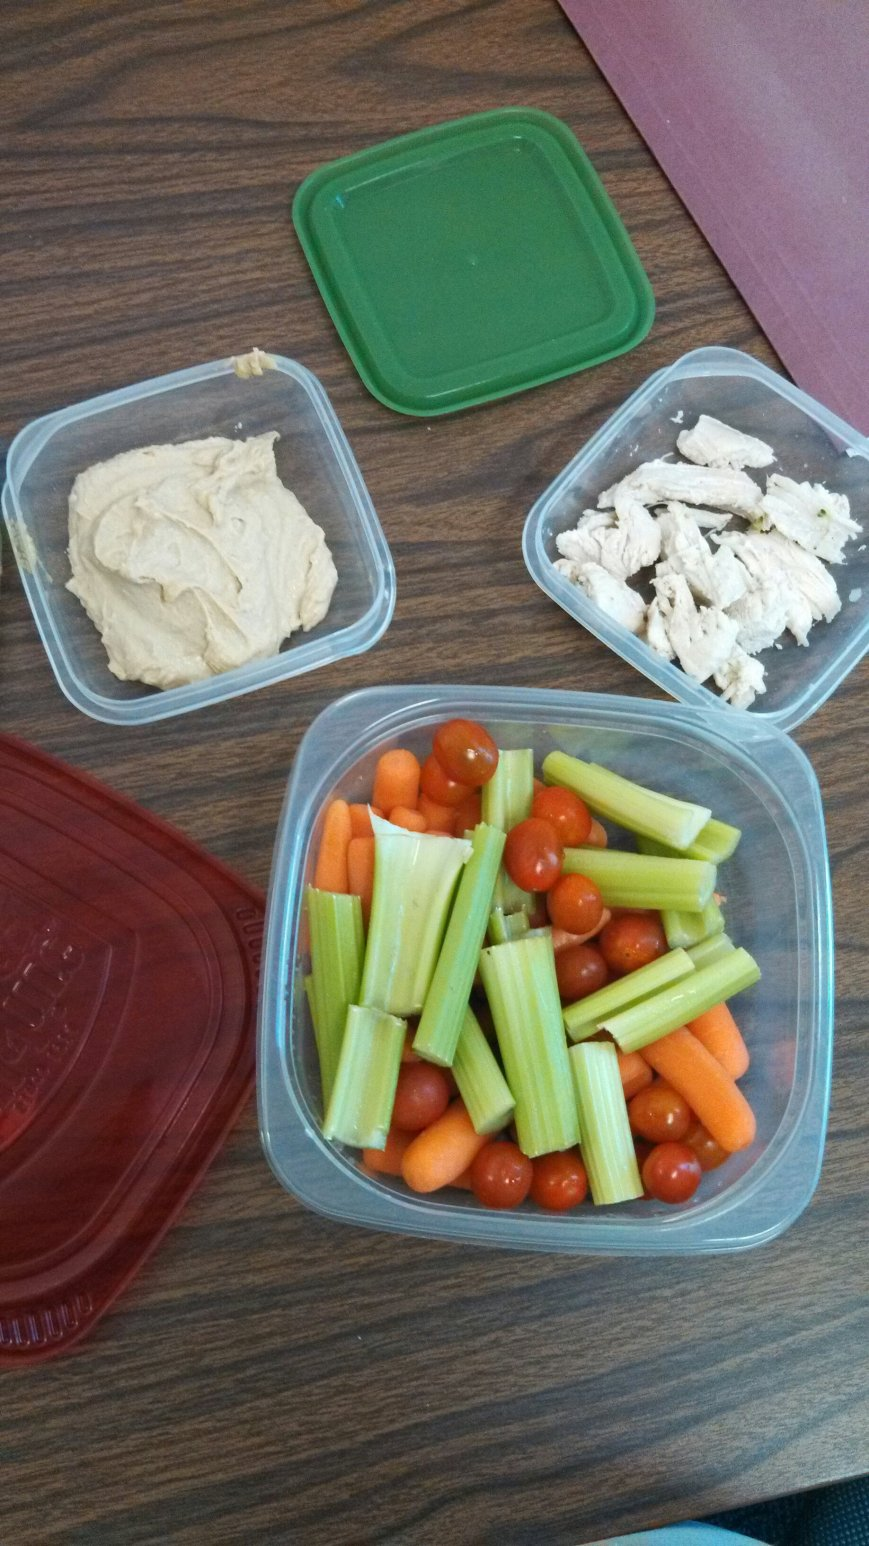 Raw veggies with hummus, with 3 oz of chicken.